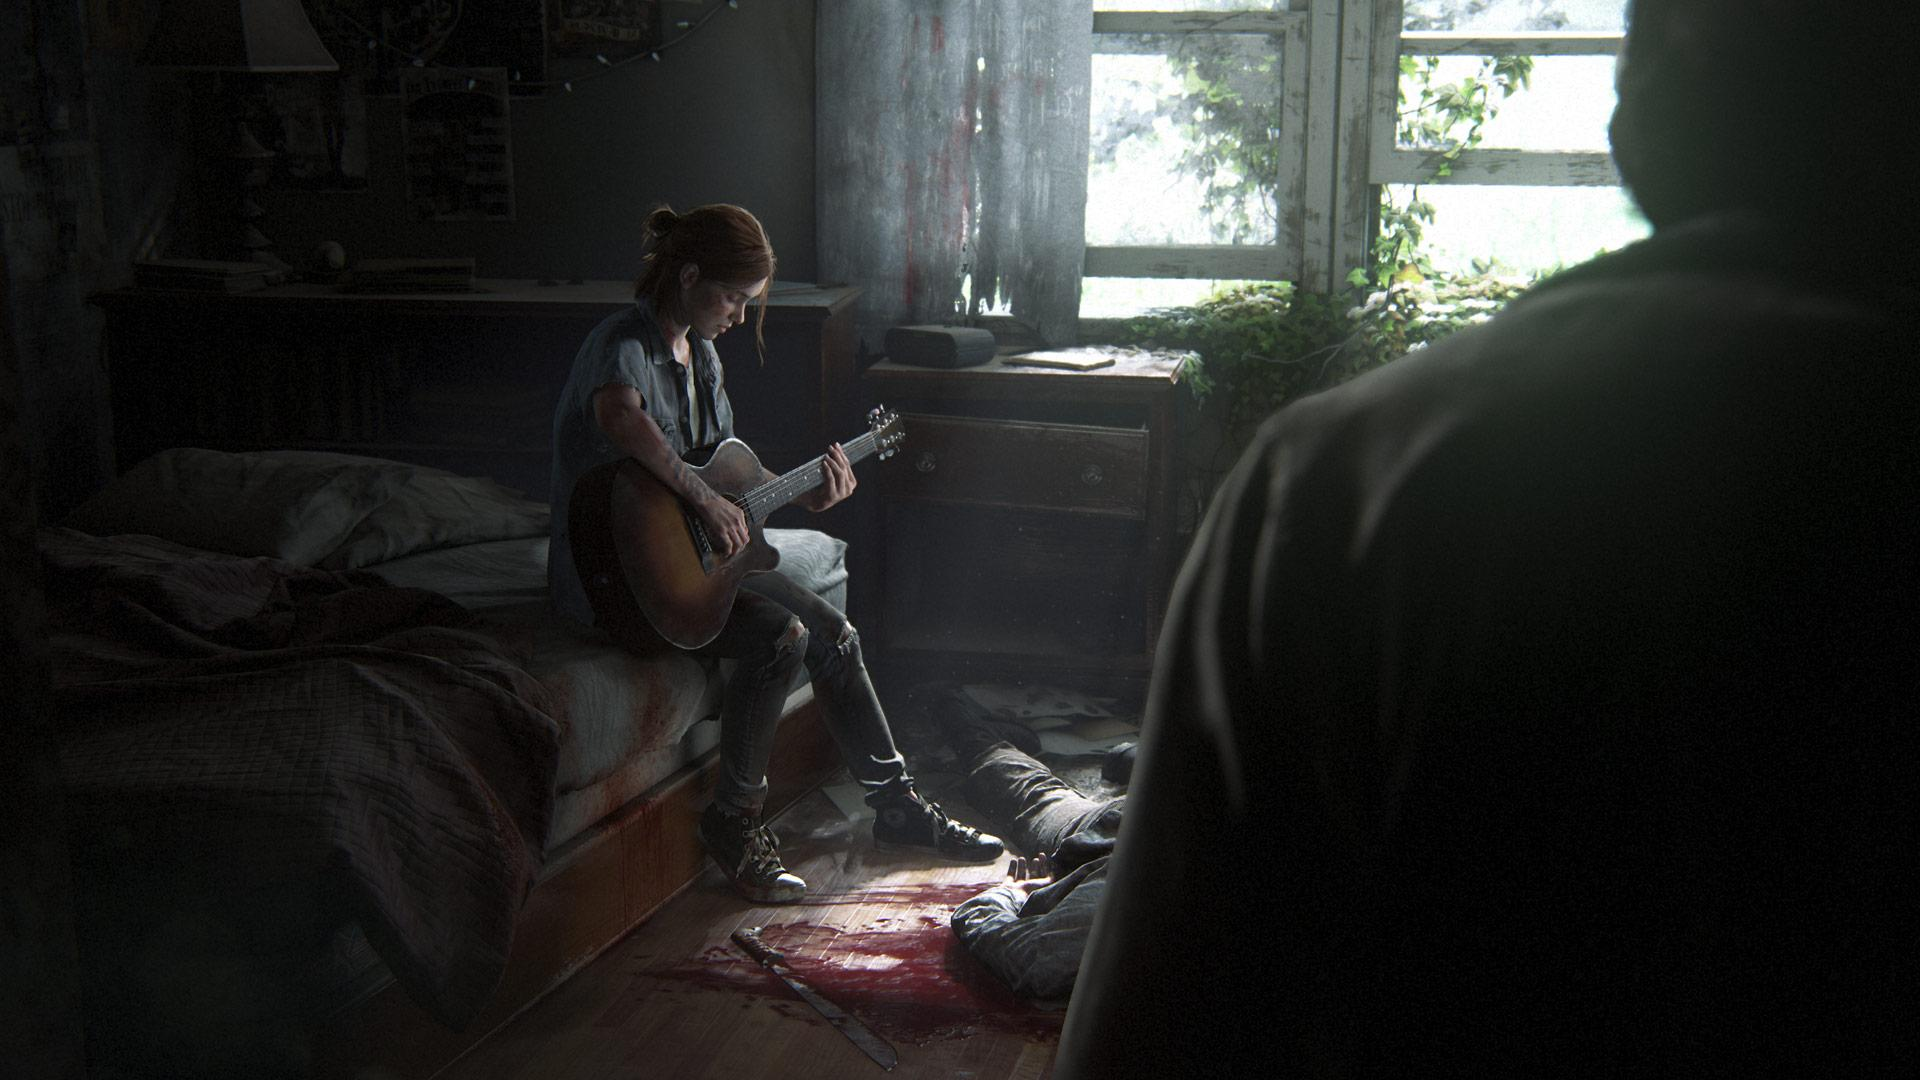 The Last of Us 2 trailer: Sony officially announce sequel to critically acclaimed Naughty Dog game